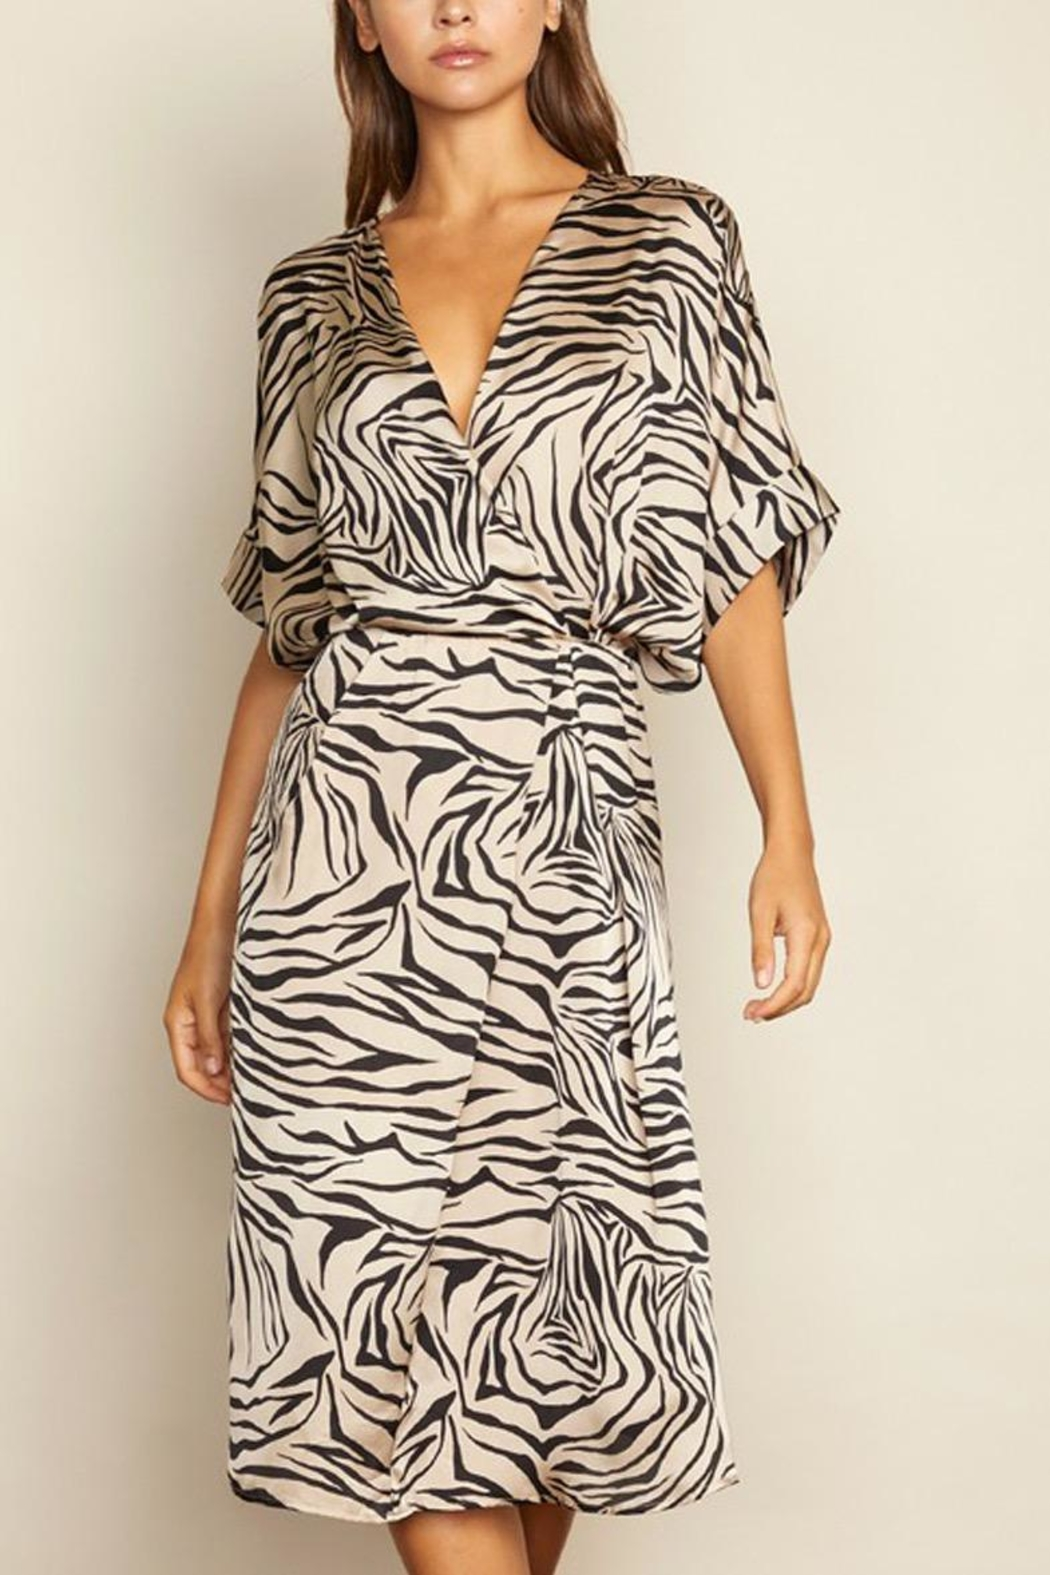 dress forum Zebra Surplice Dress - Main Image